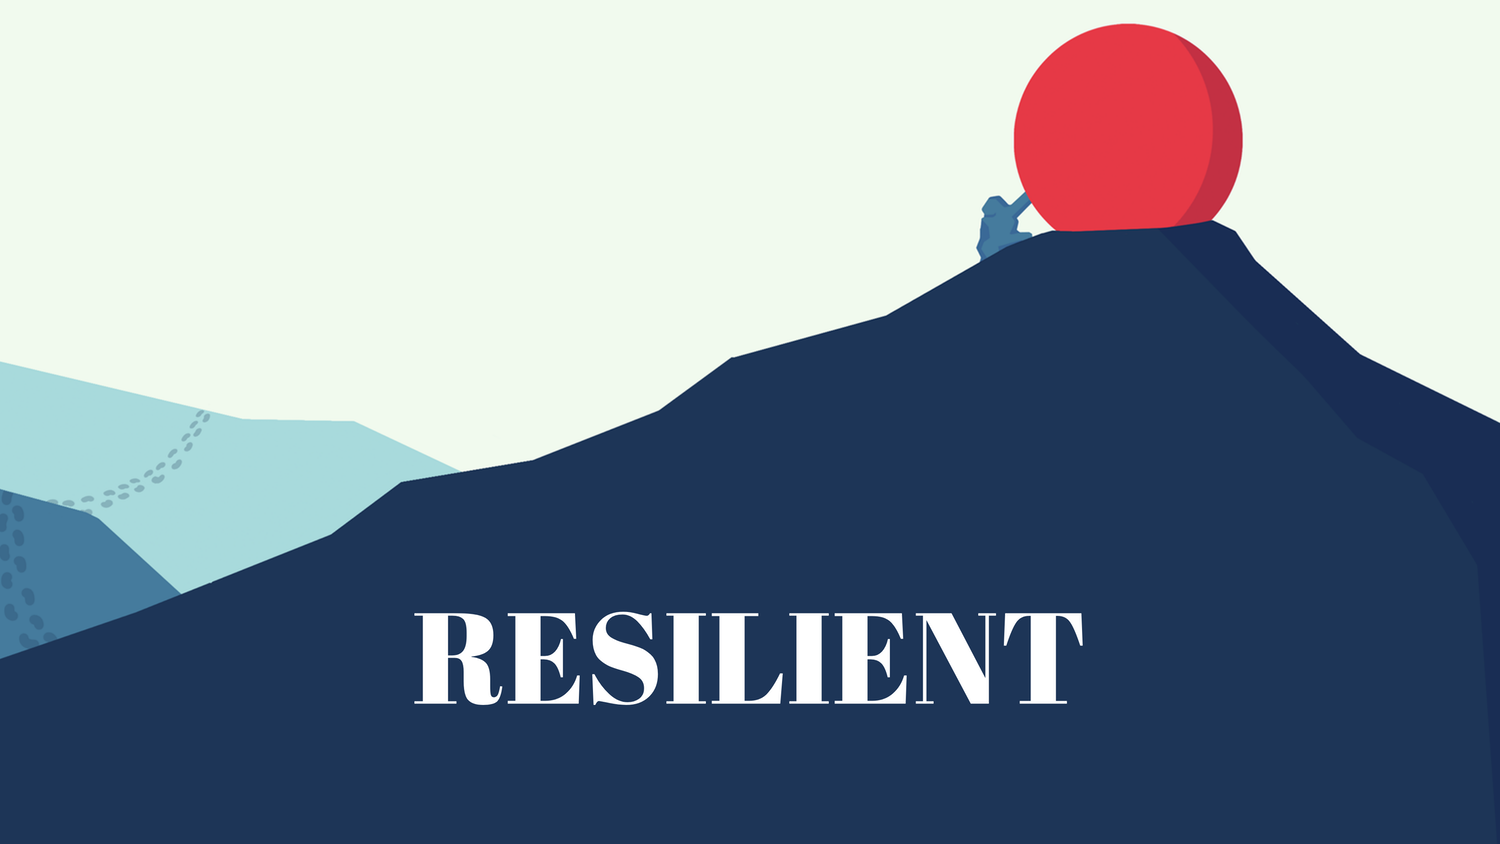 RESILIENT 1